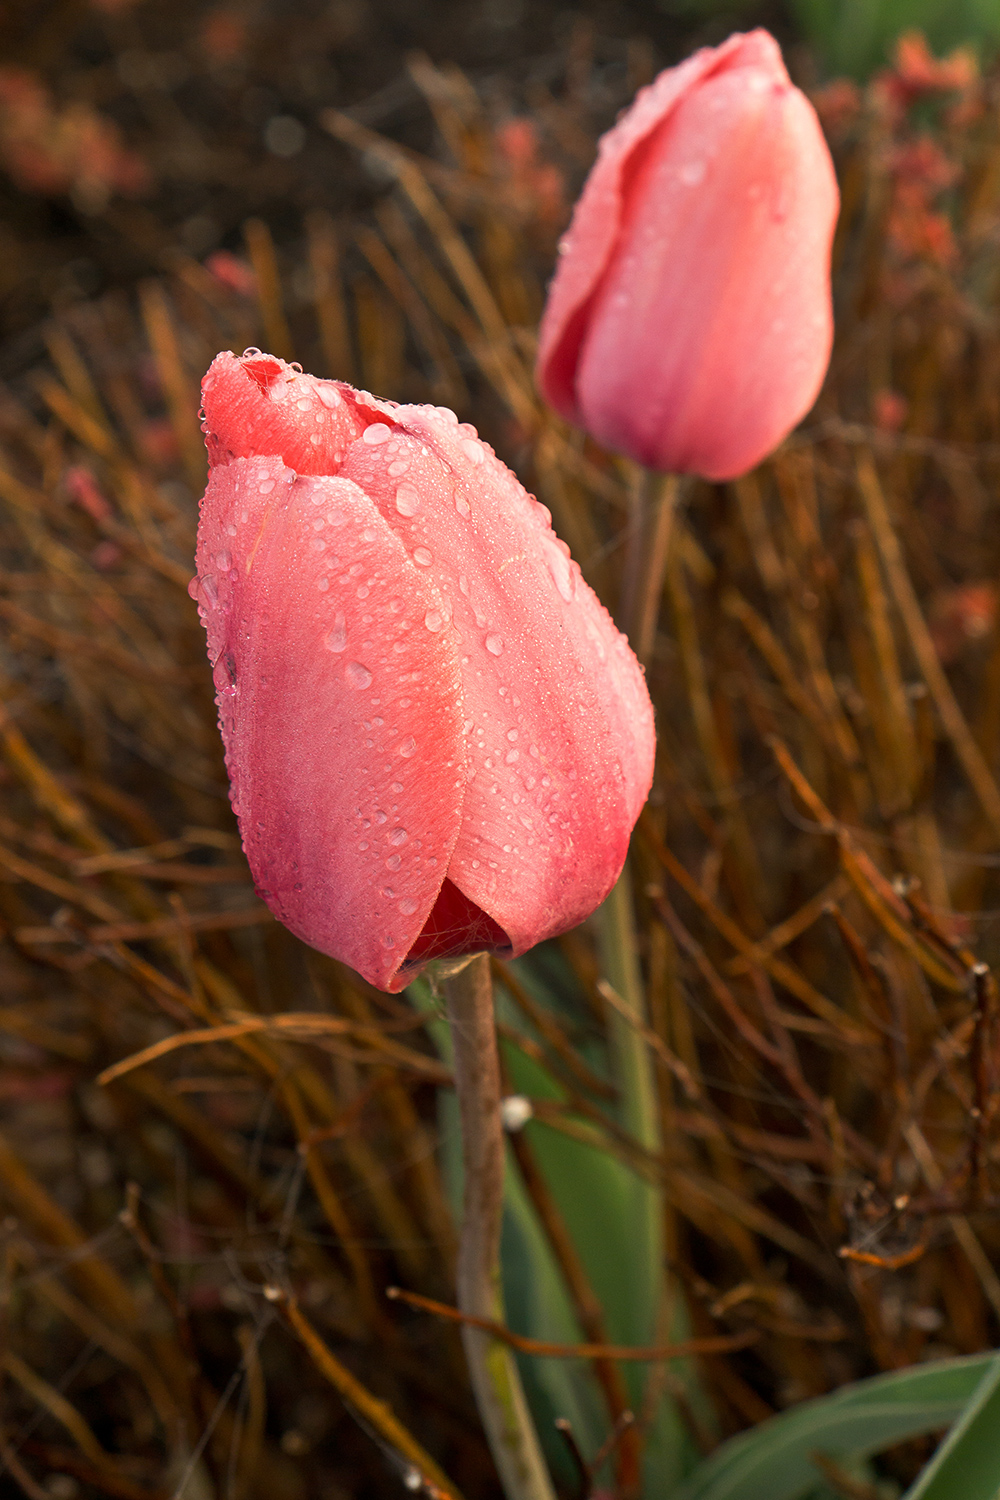 Tulips at dawn